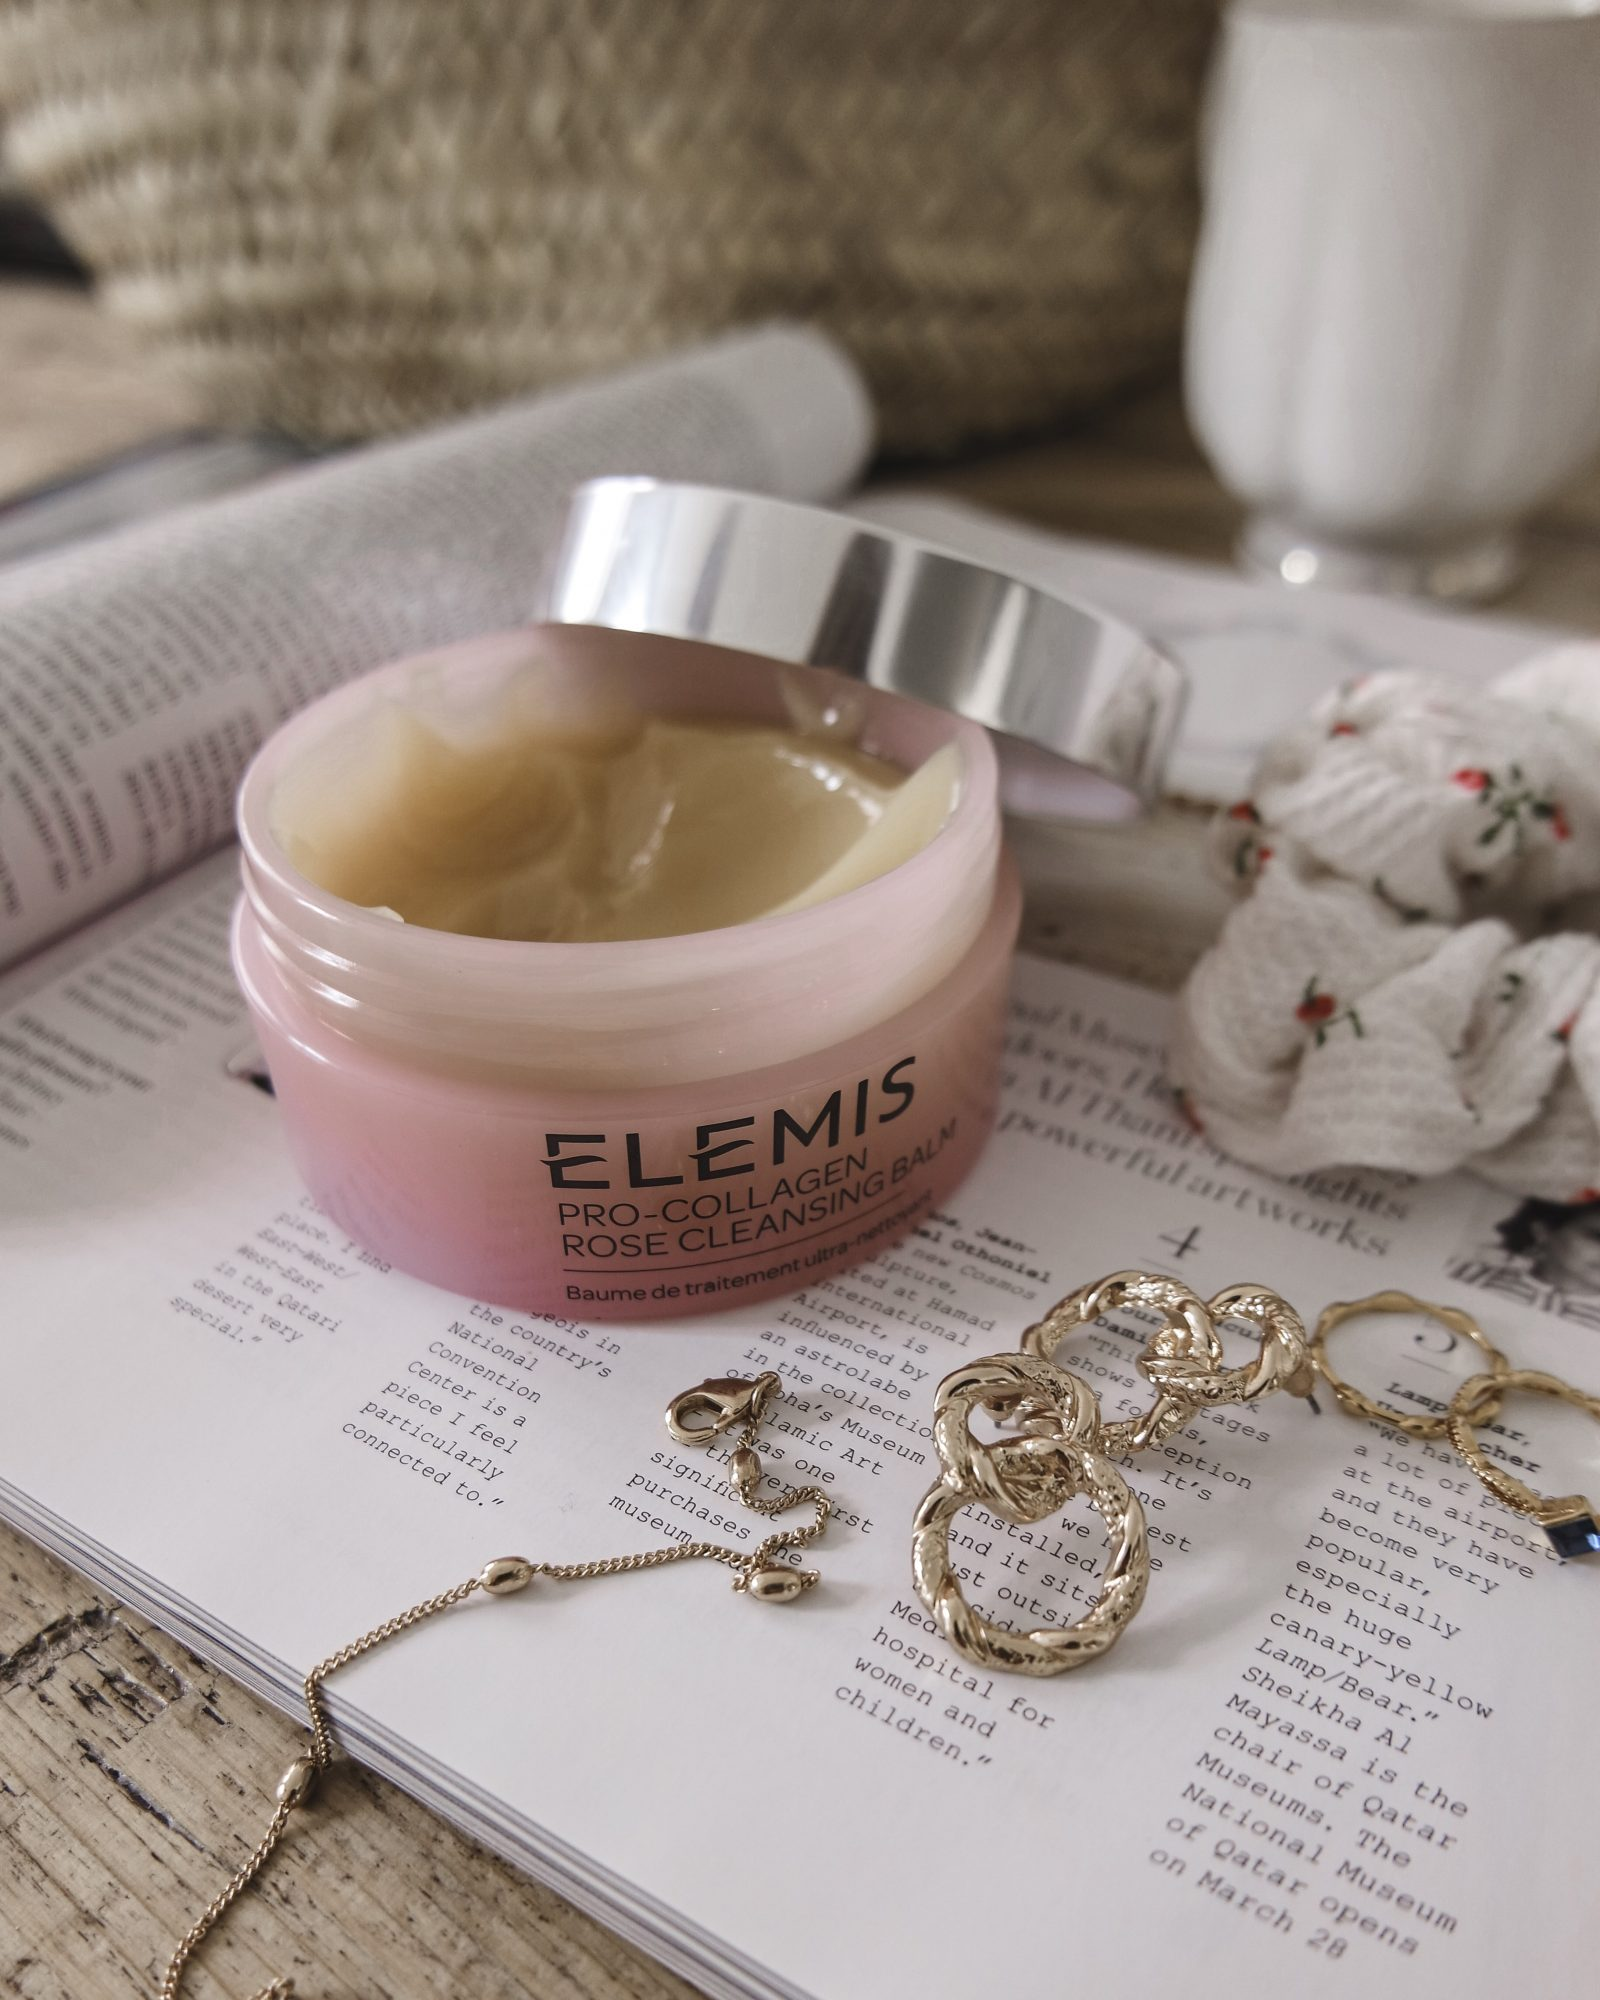 Elemis Cleansing Balm - Rose Cleansing Balm